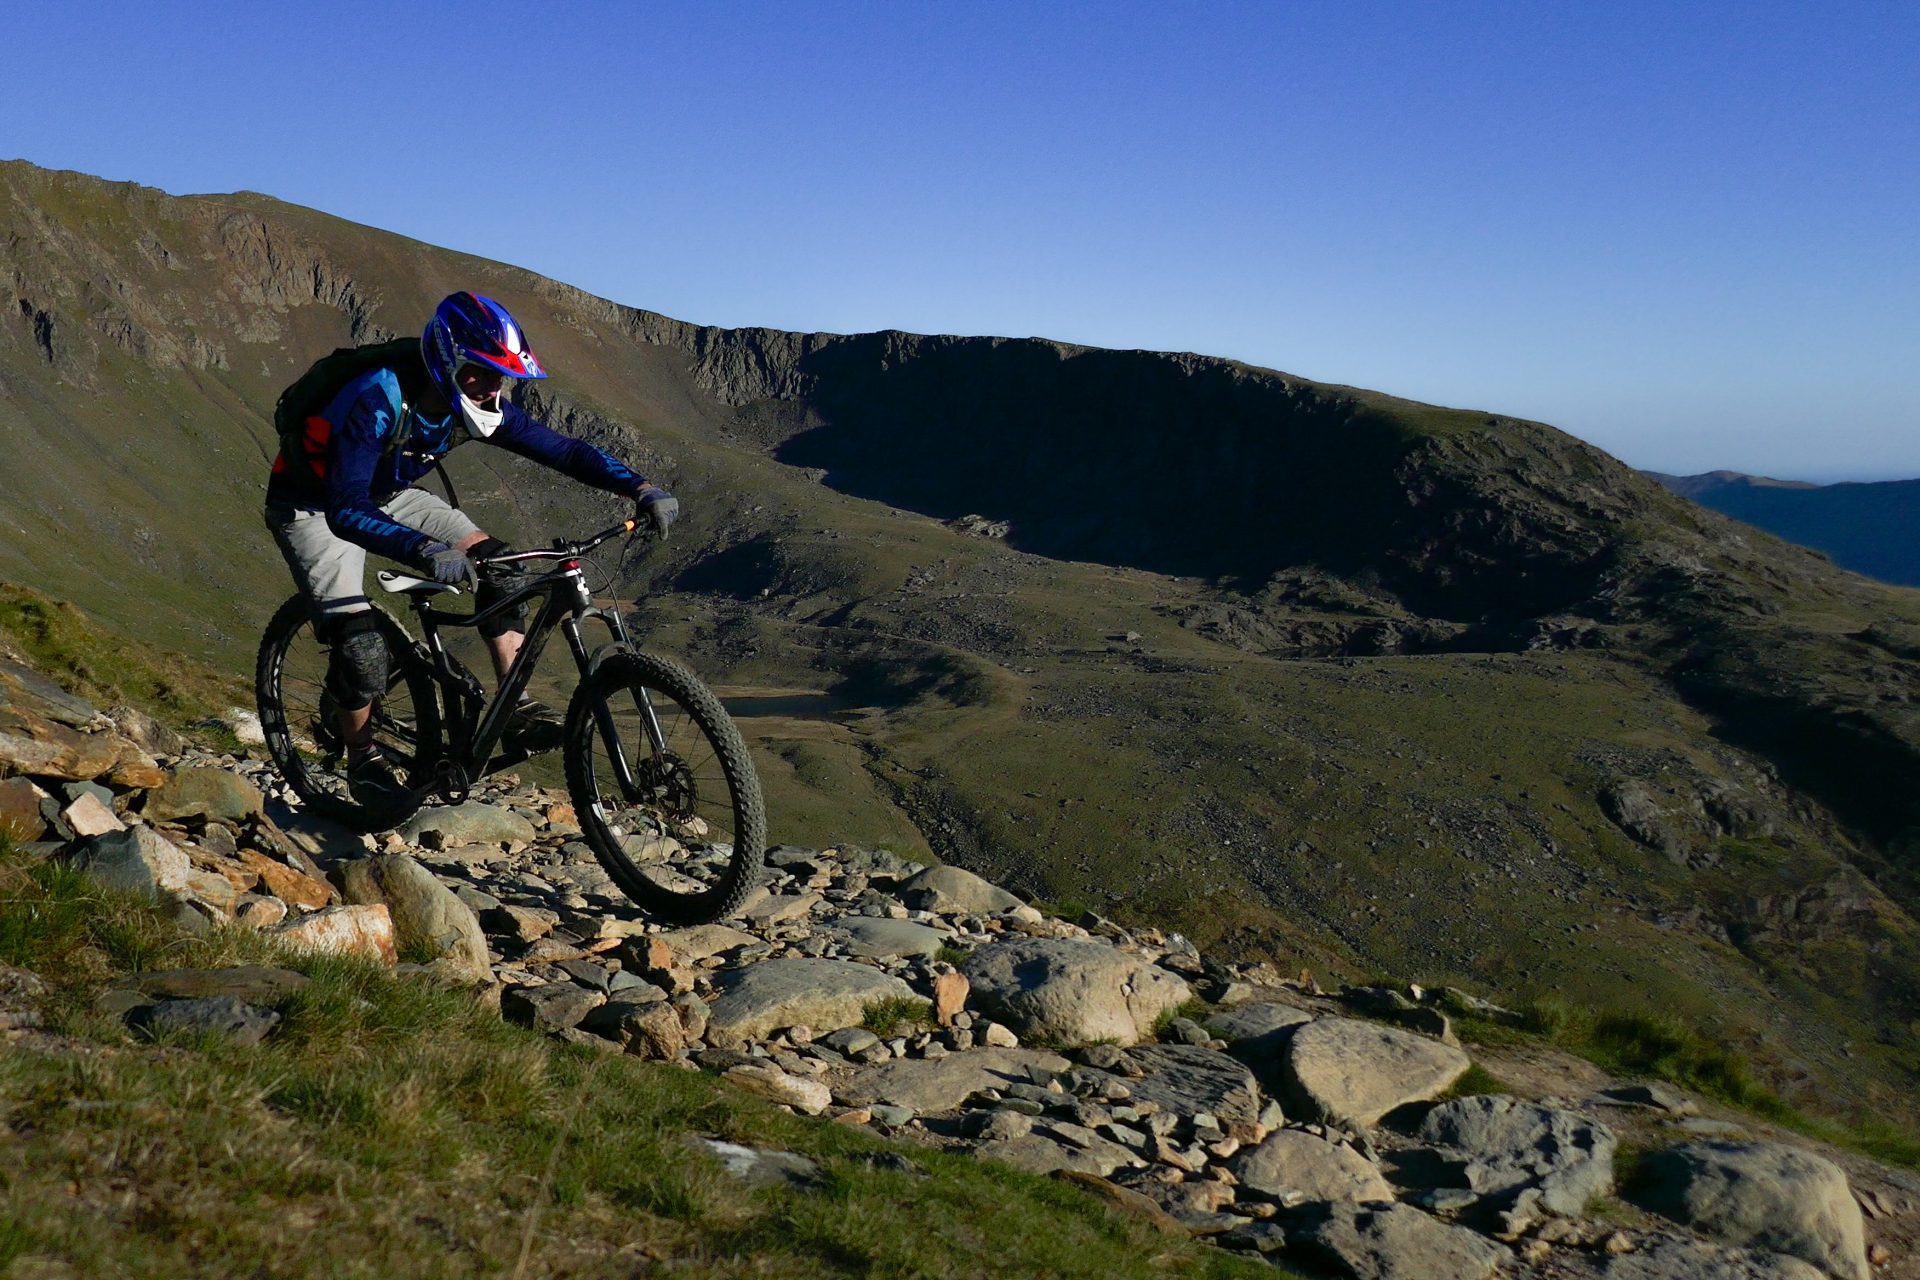 Snowdonia has a wealth of trails perfect for mountain biking at all abilities. Join us for a guided adventure.